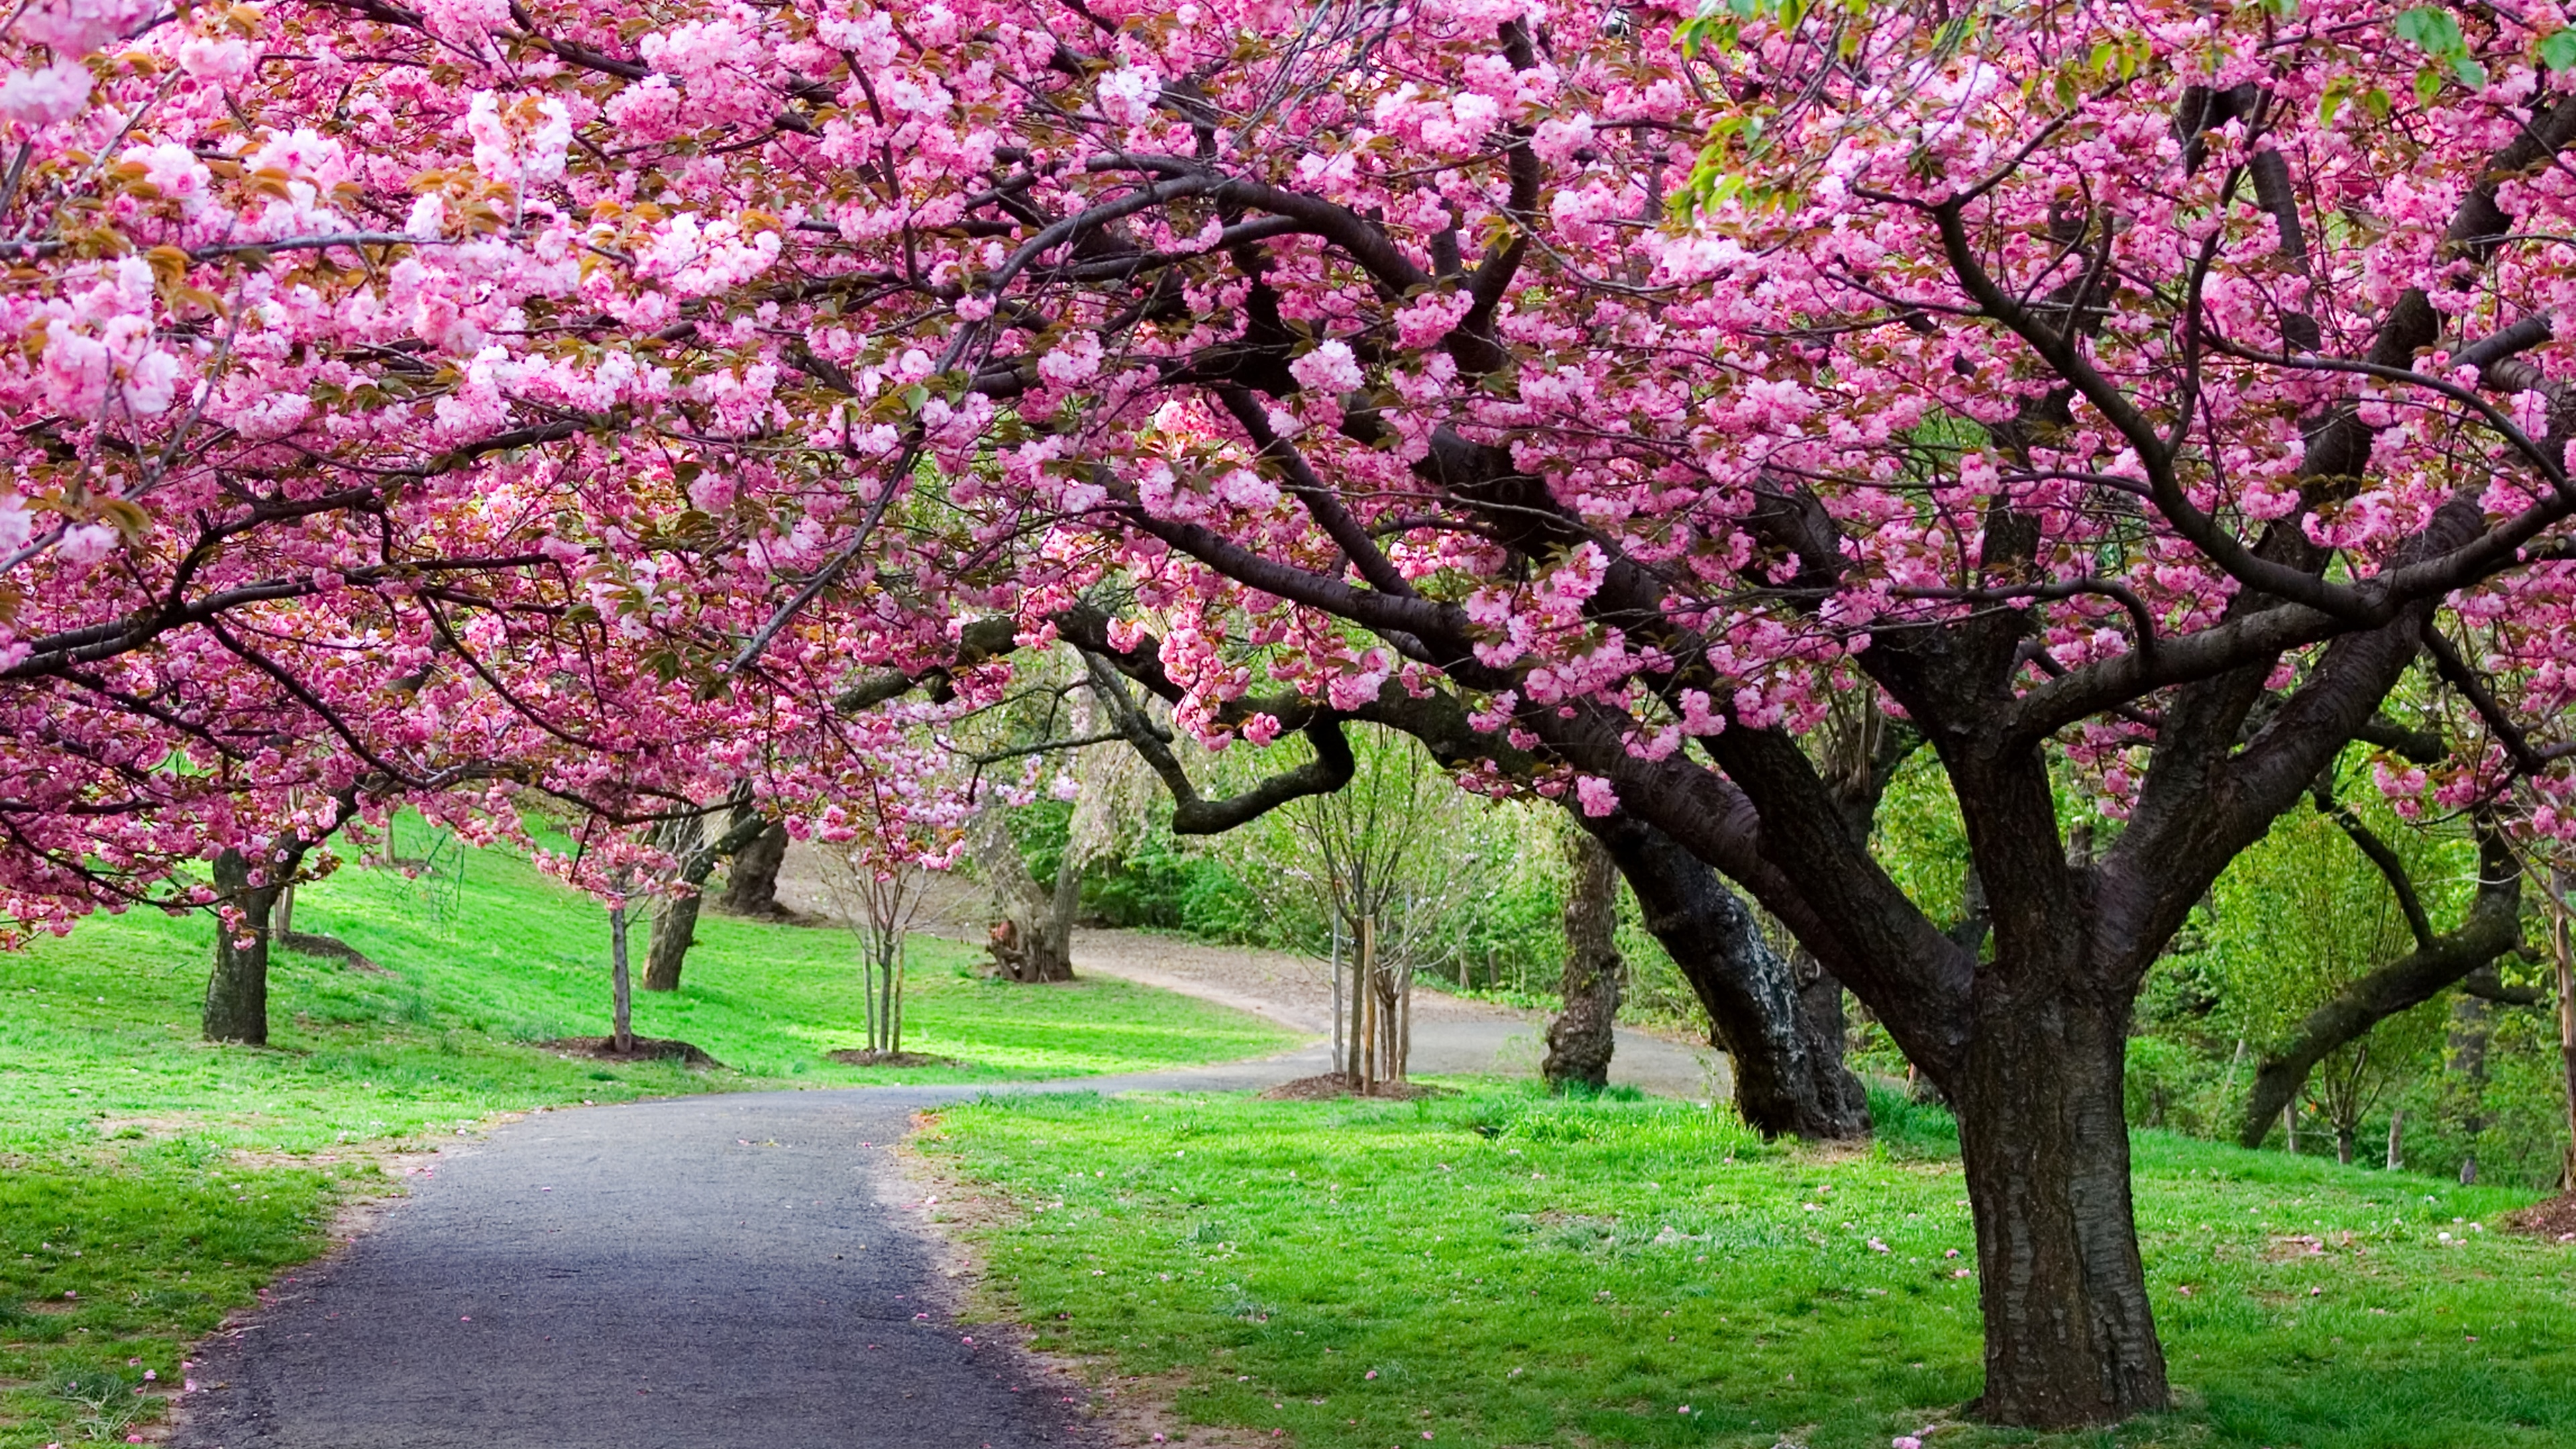 118 Cherry Blossom Hd Wallpapers - Cherry Blossom Tree Hd , HD Wallpaper & Backgrounds